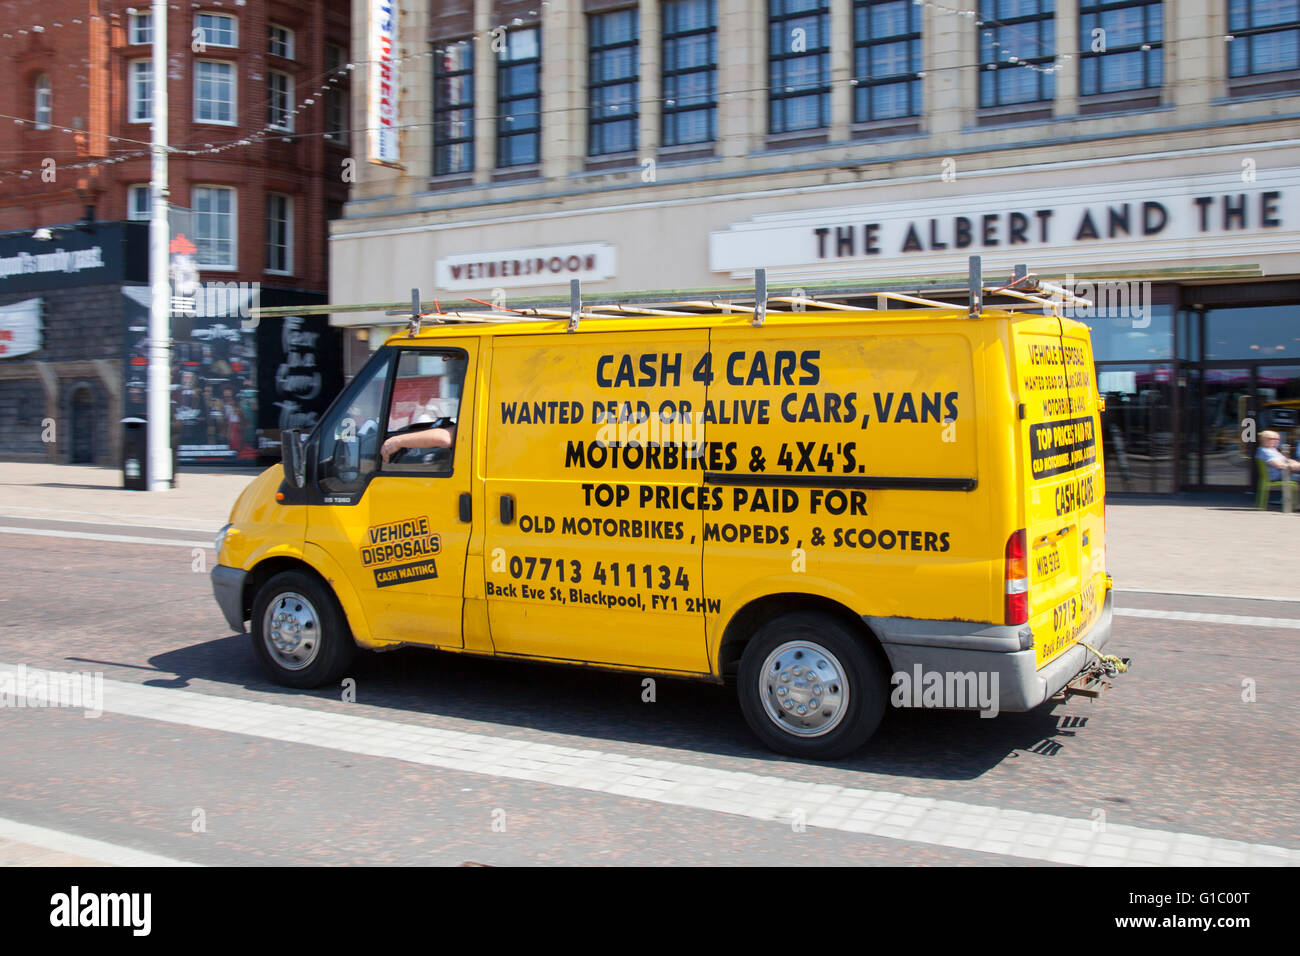 Cars Wanted Stock Photos & Cars Wanted Stock Images - Alamy